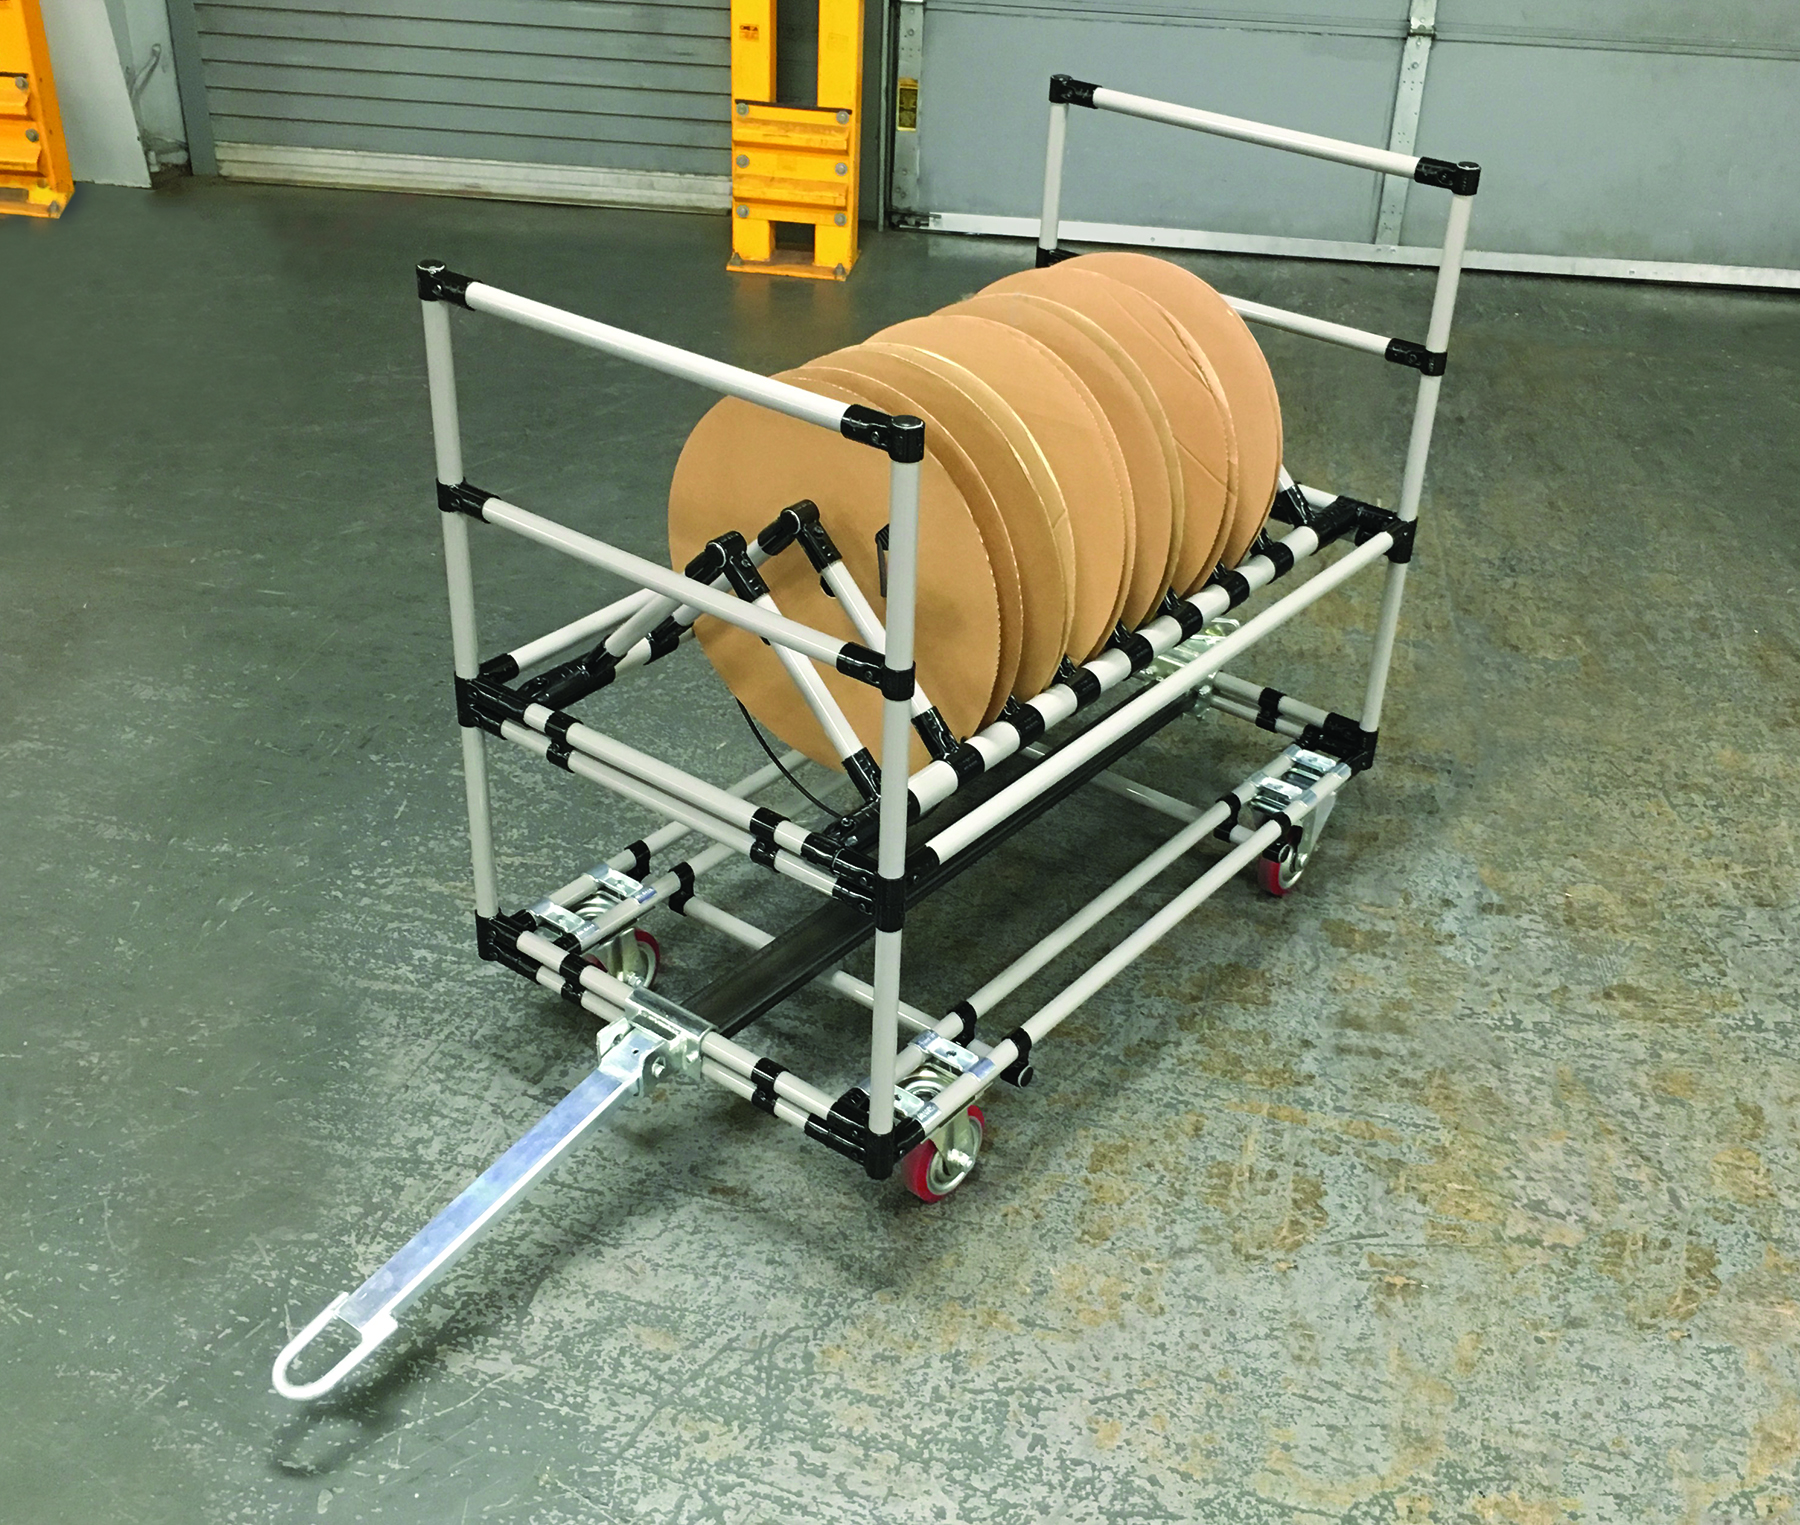 The Real Reel Handling Cart